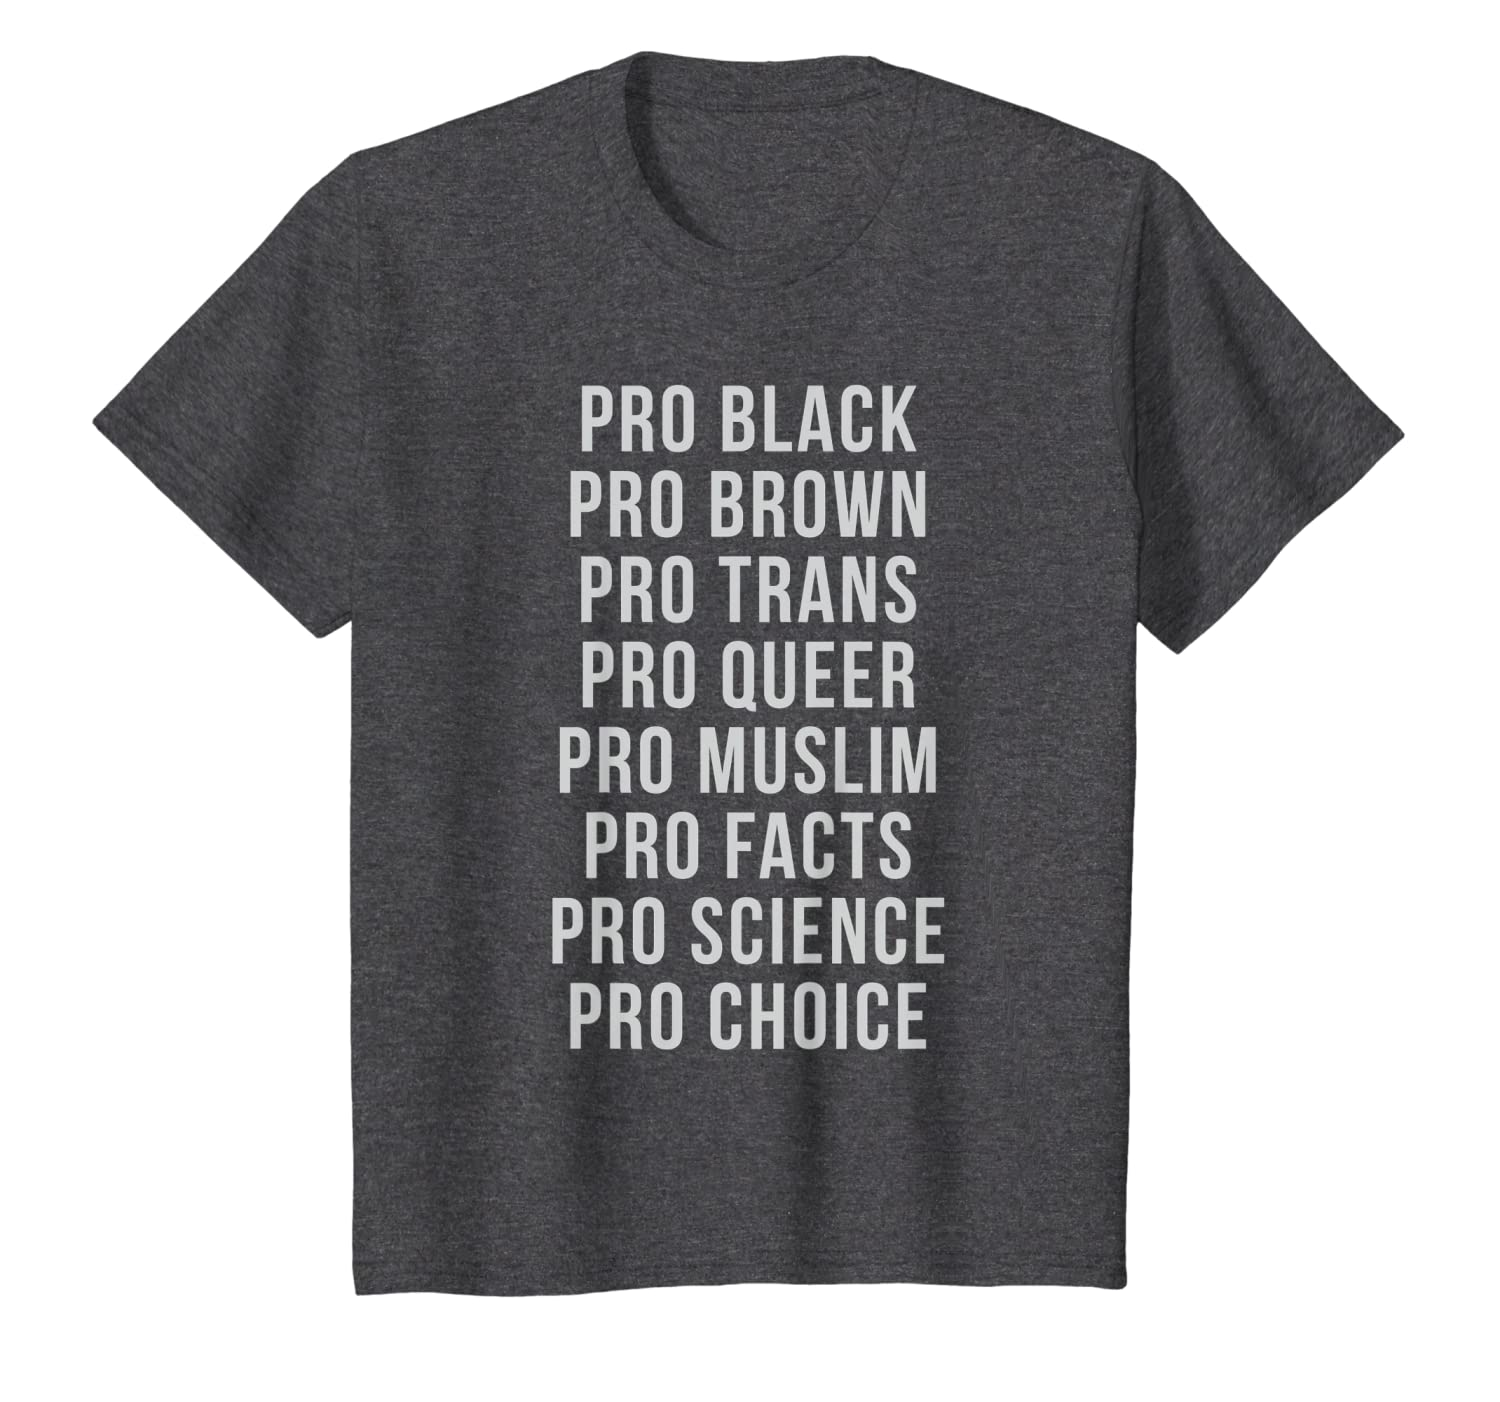 a8e6b211a33d Amazon.com: Pro Equality T-Shirt to Promote Equal Rights for All: Clothing